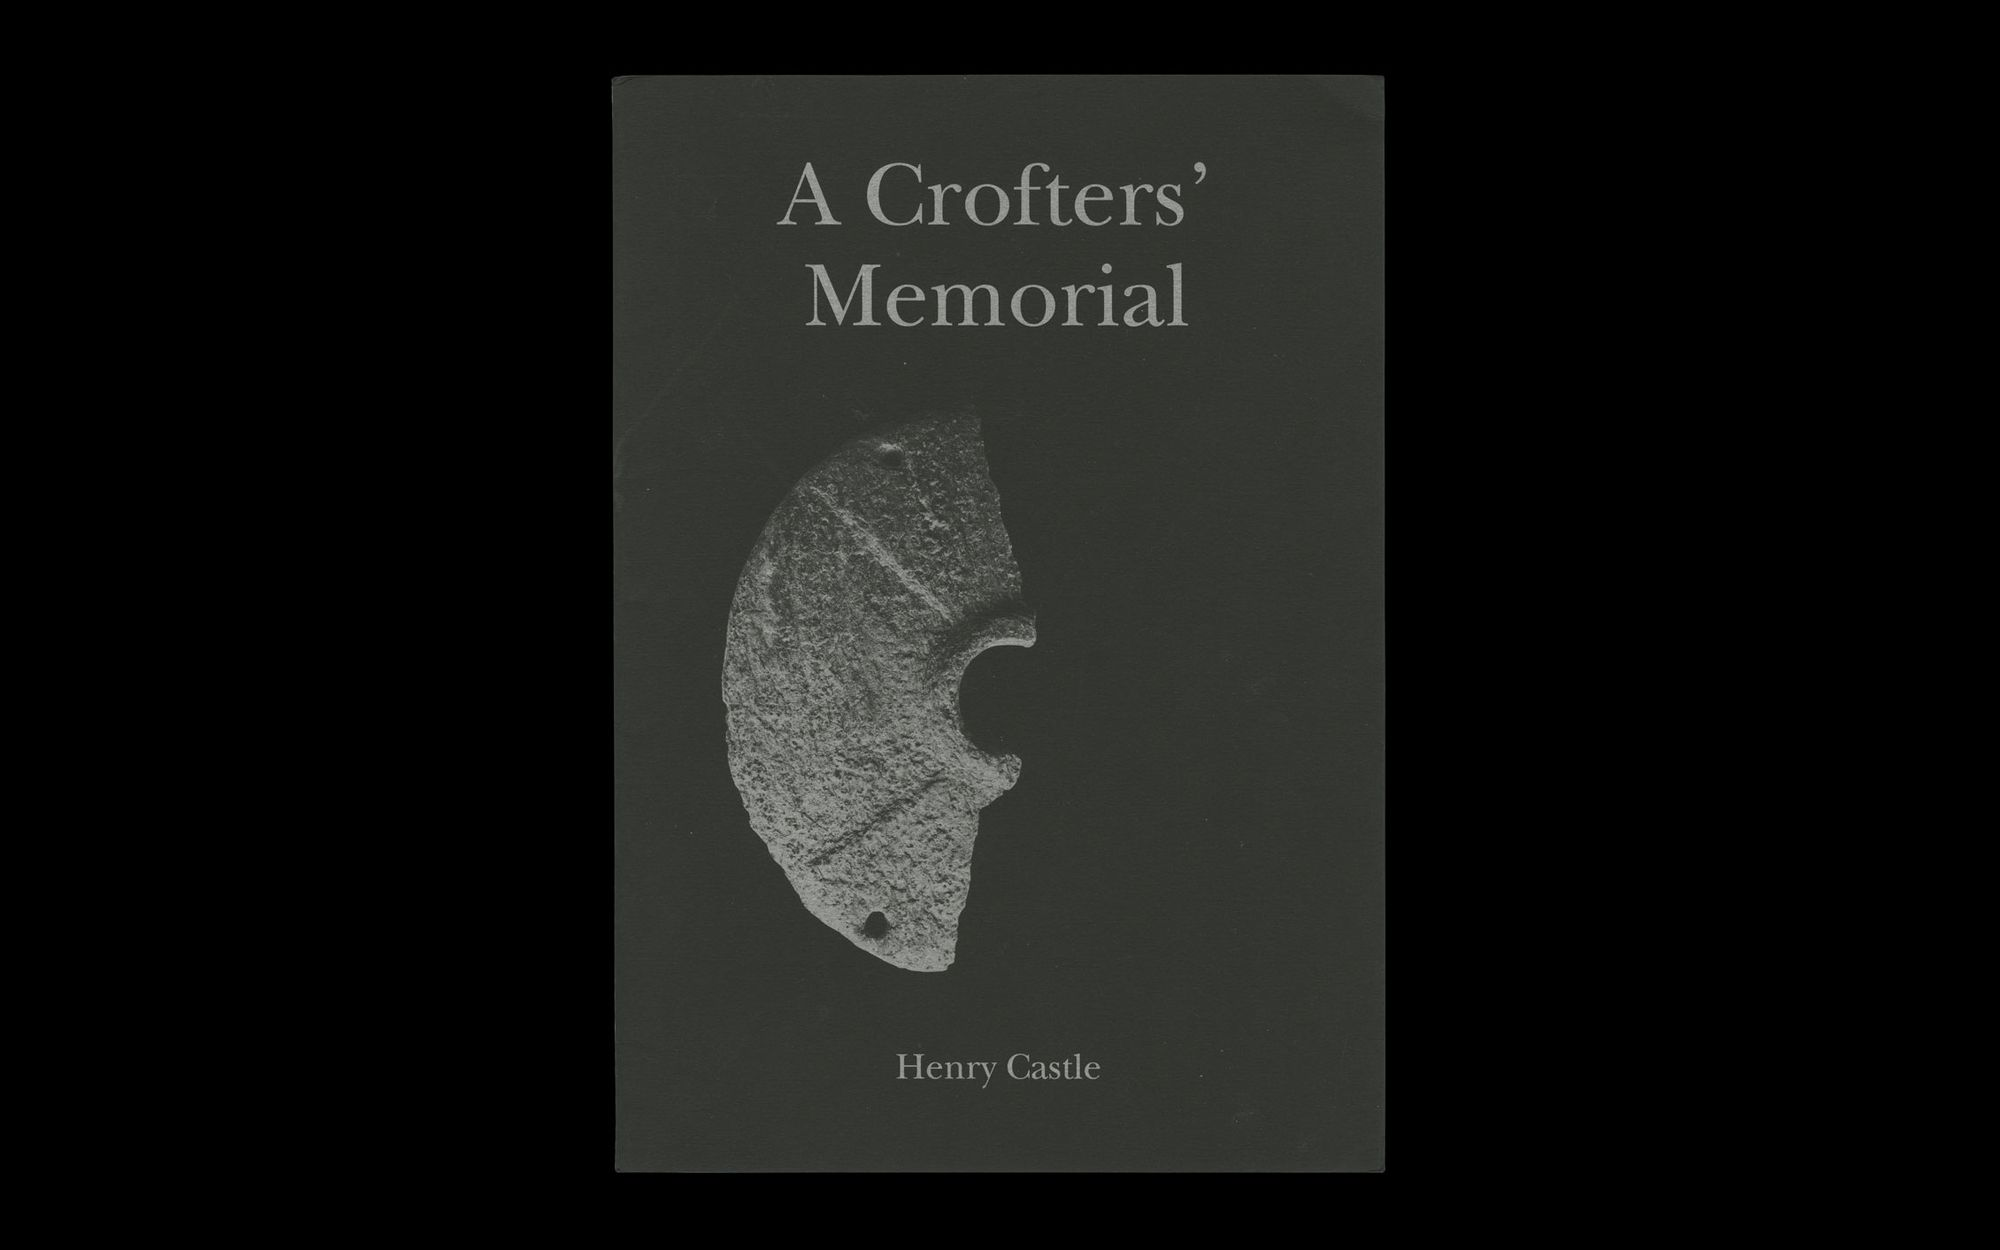 Scan of cover of Henry Castle, A Crofter's Memorial. Brochure with silver ink printed on black cover stock.